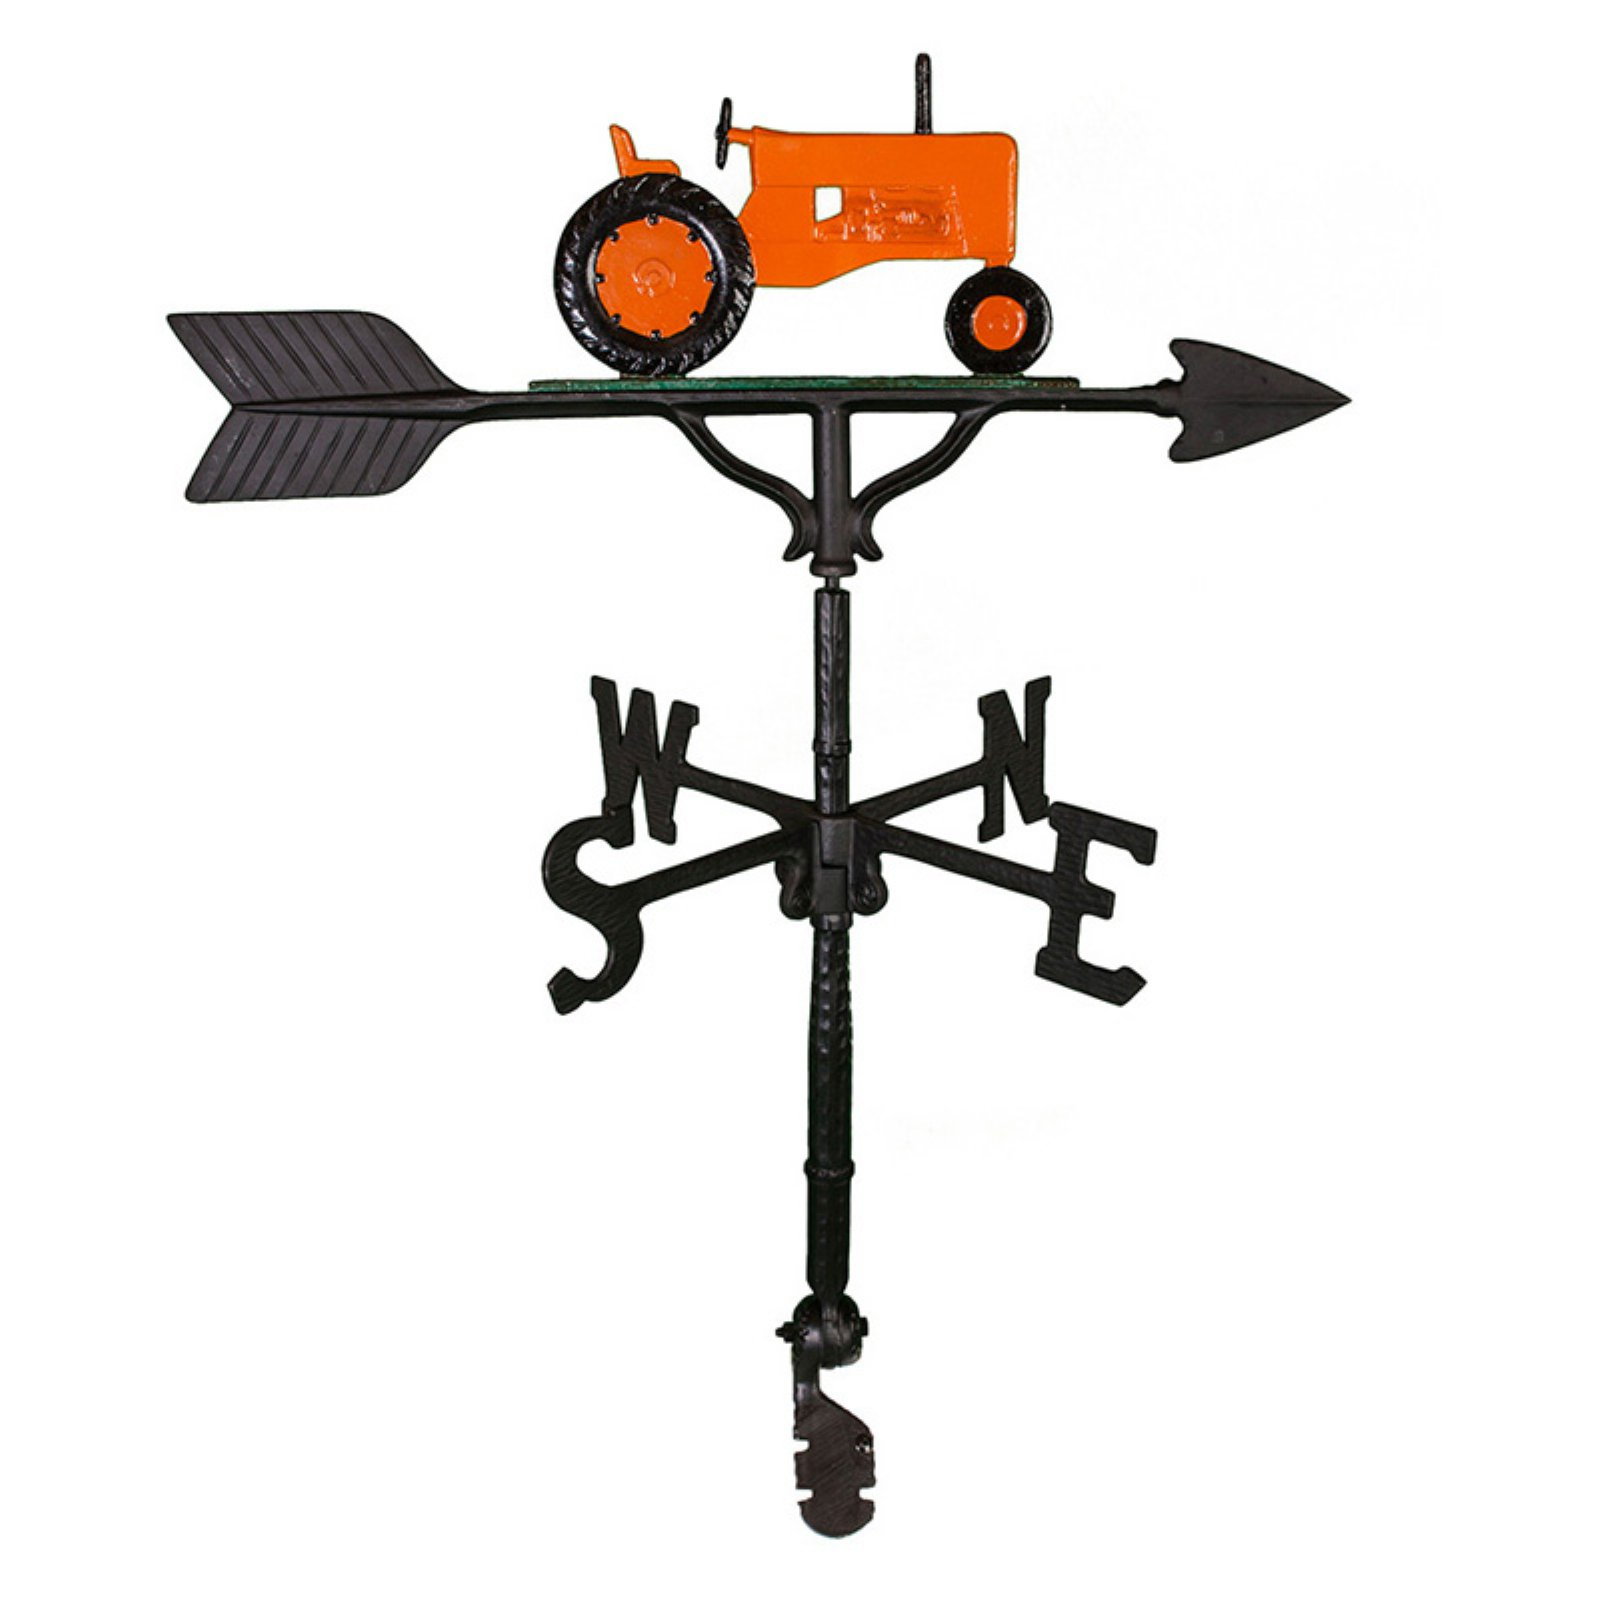 Orange Tractor Weathervane 32 in. by Montague Metal Products